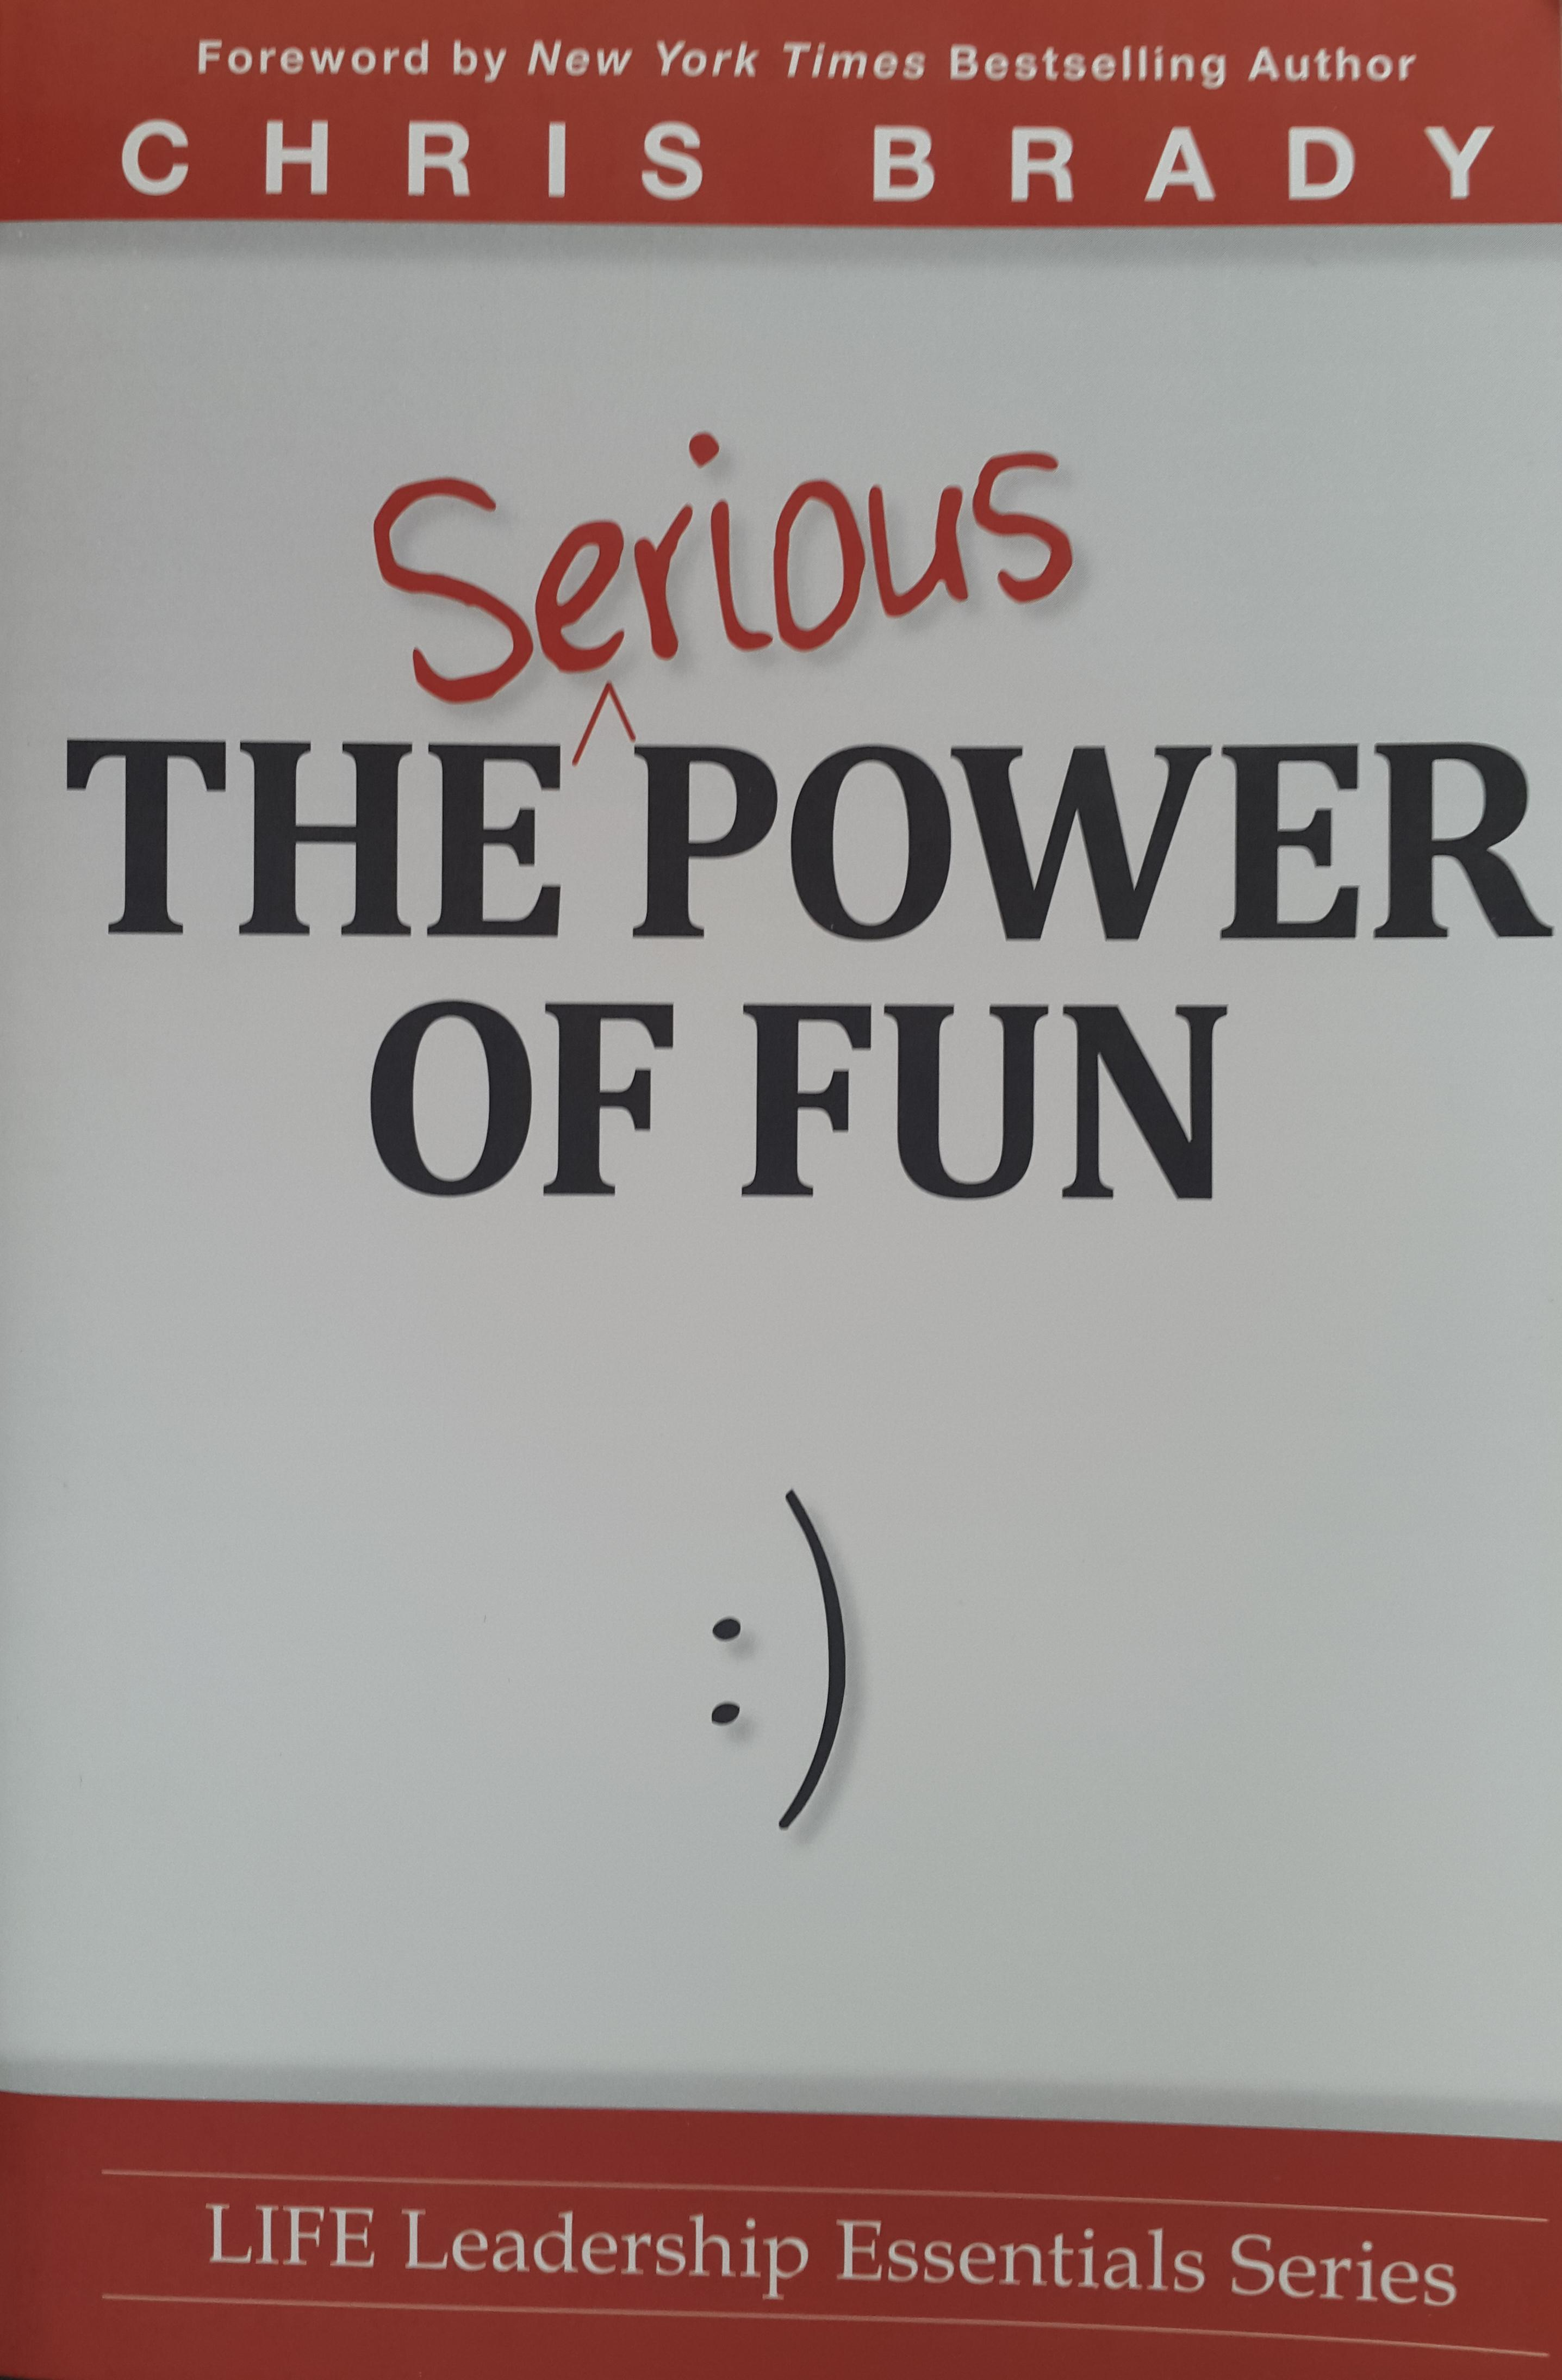 The Serious Power of Fun.